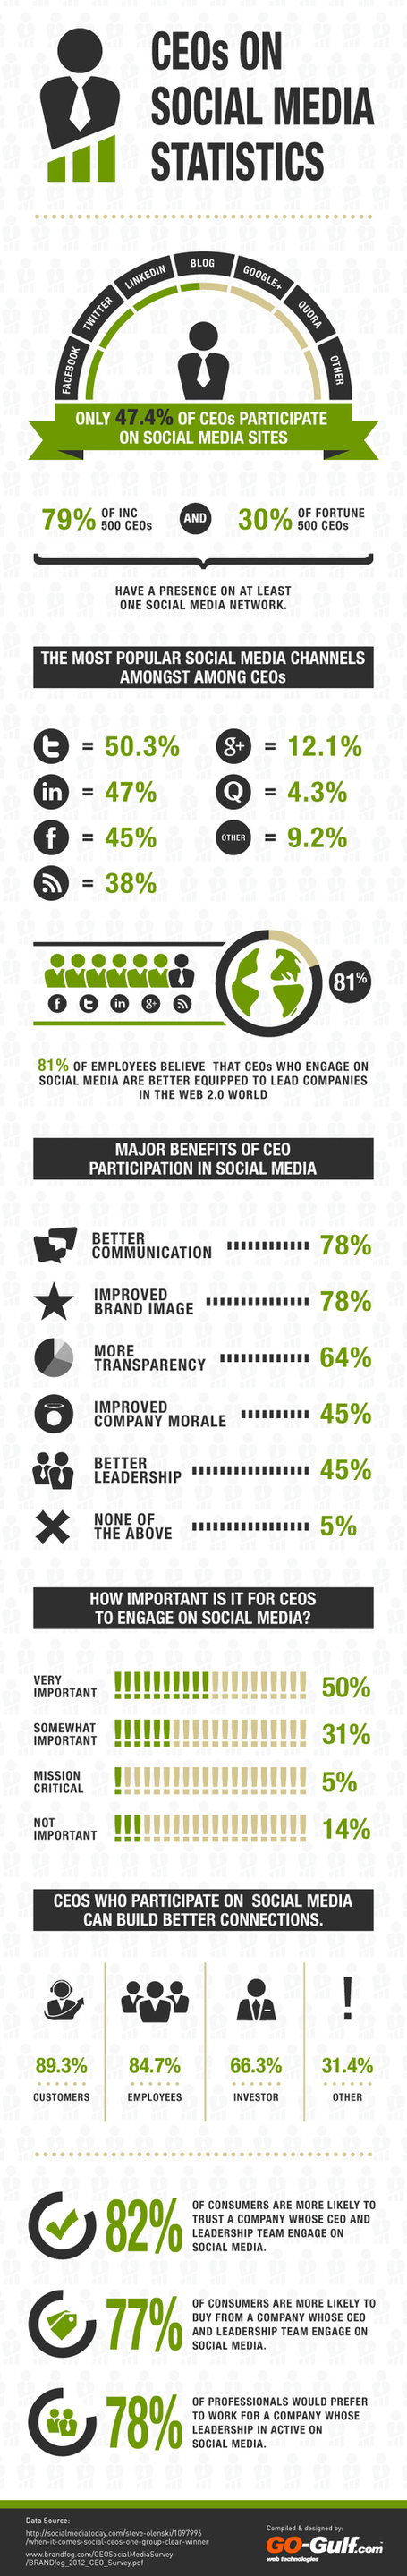 CEOs on Social Media Statistics [Infographic] | Social Mercor | Scoop.it